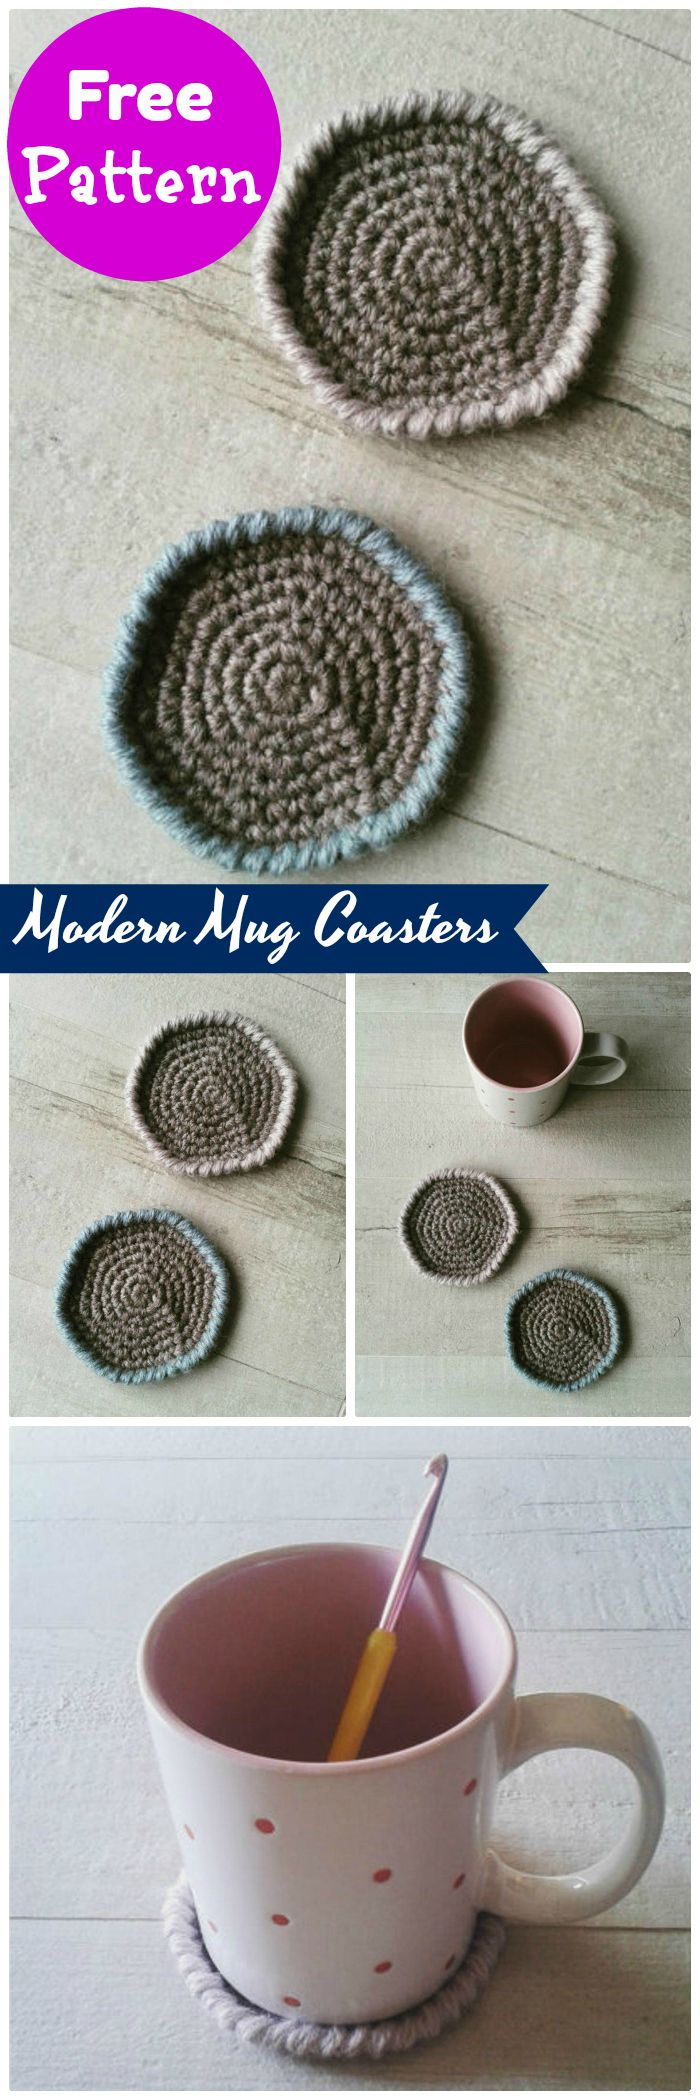 DIY Modern Mug Coasters - free crochet coaster patterns | Free Crochet Coaster Patterns